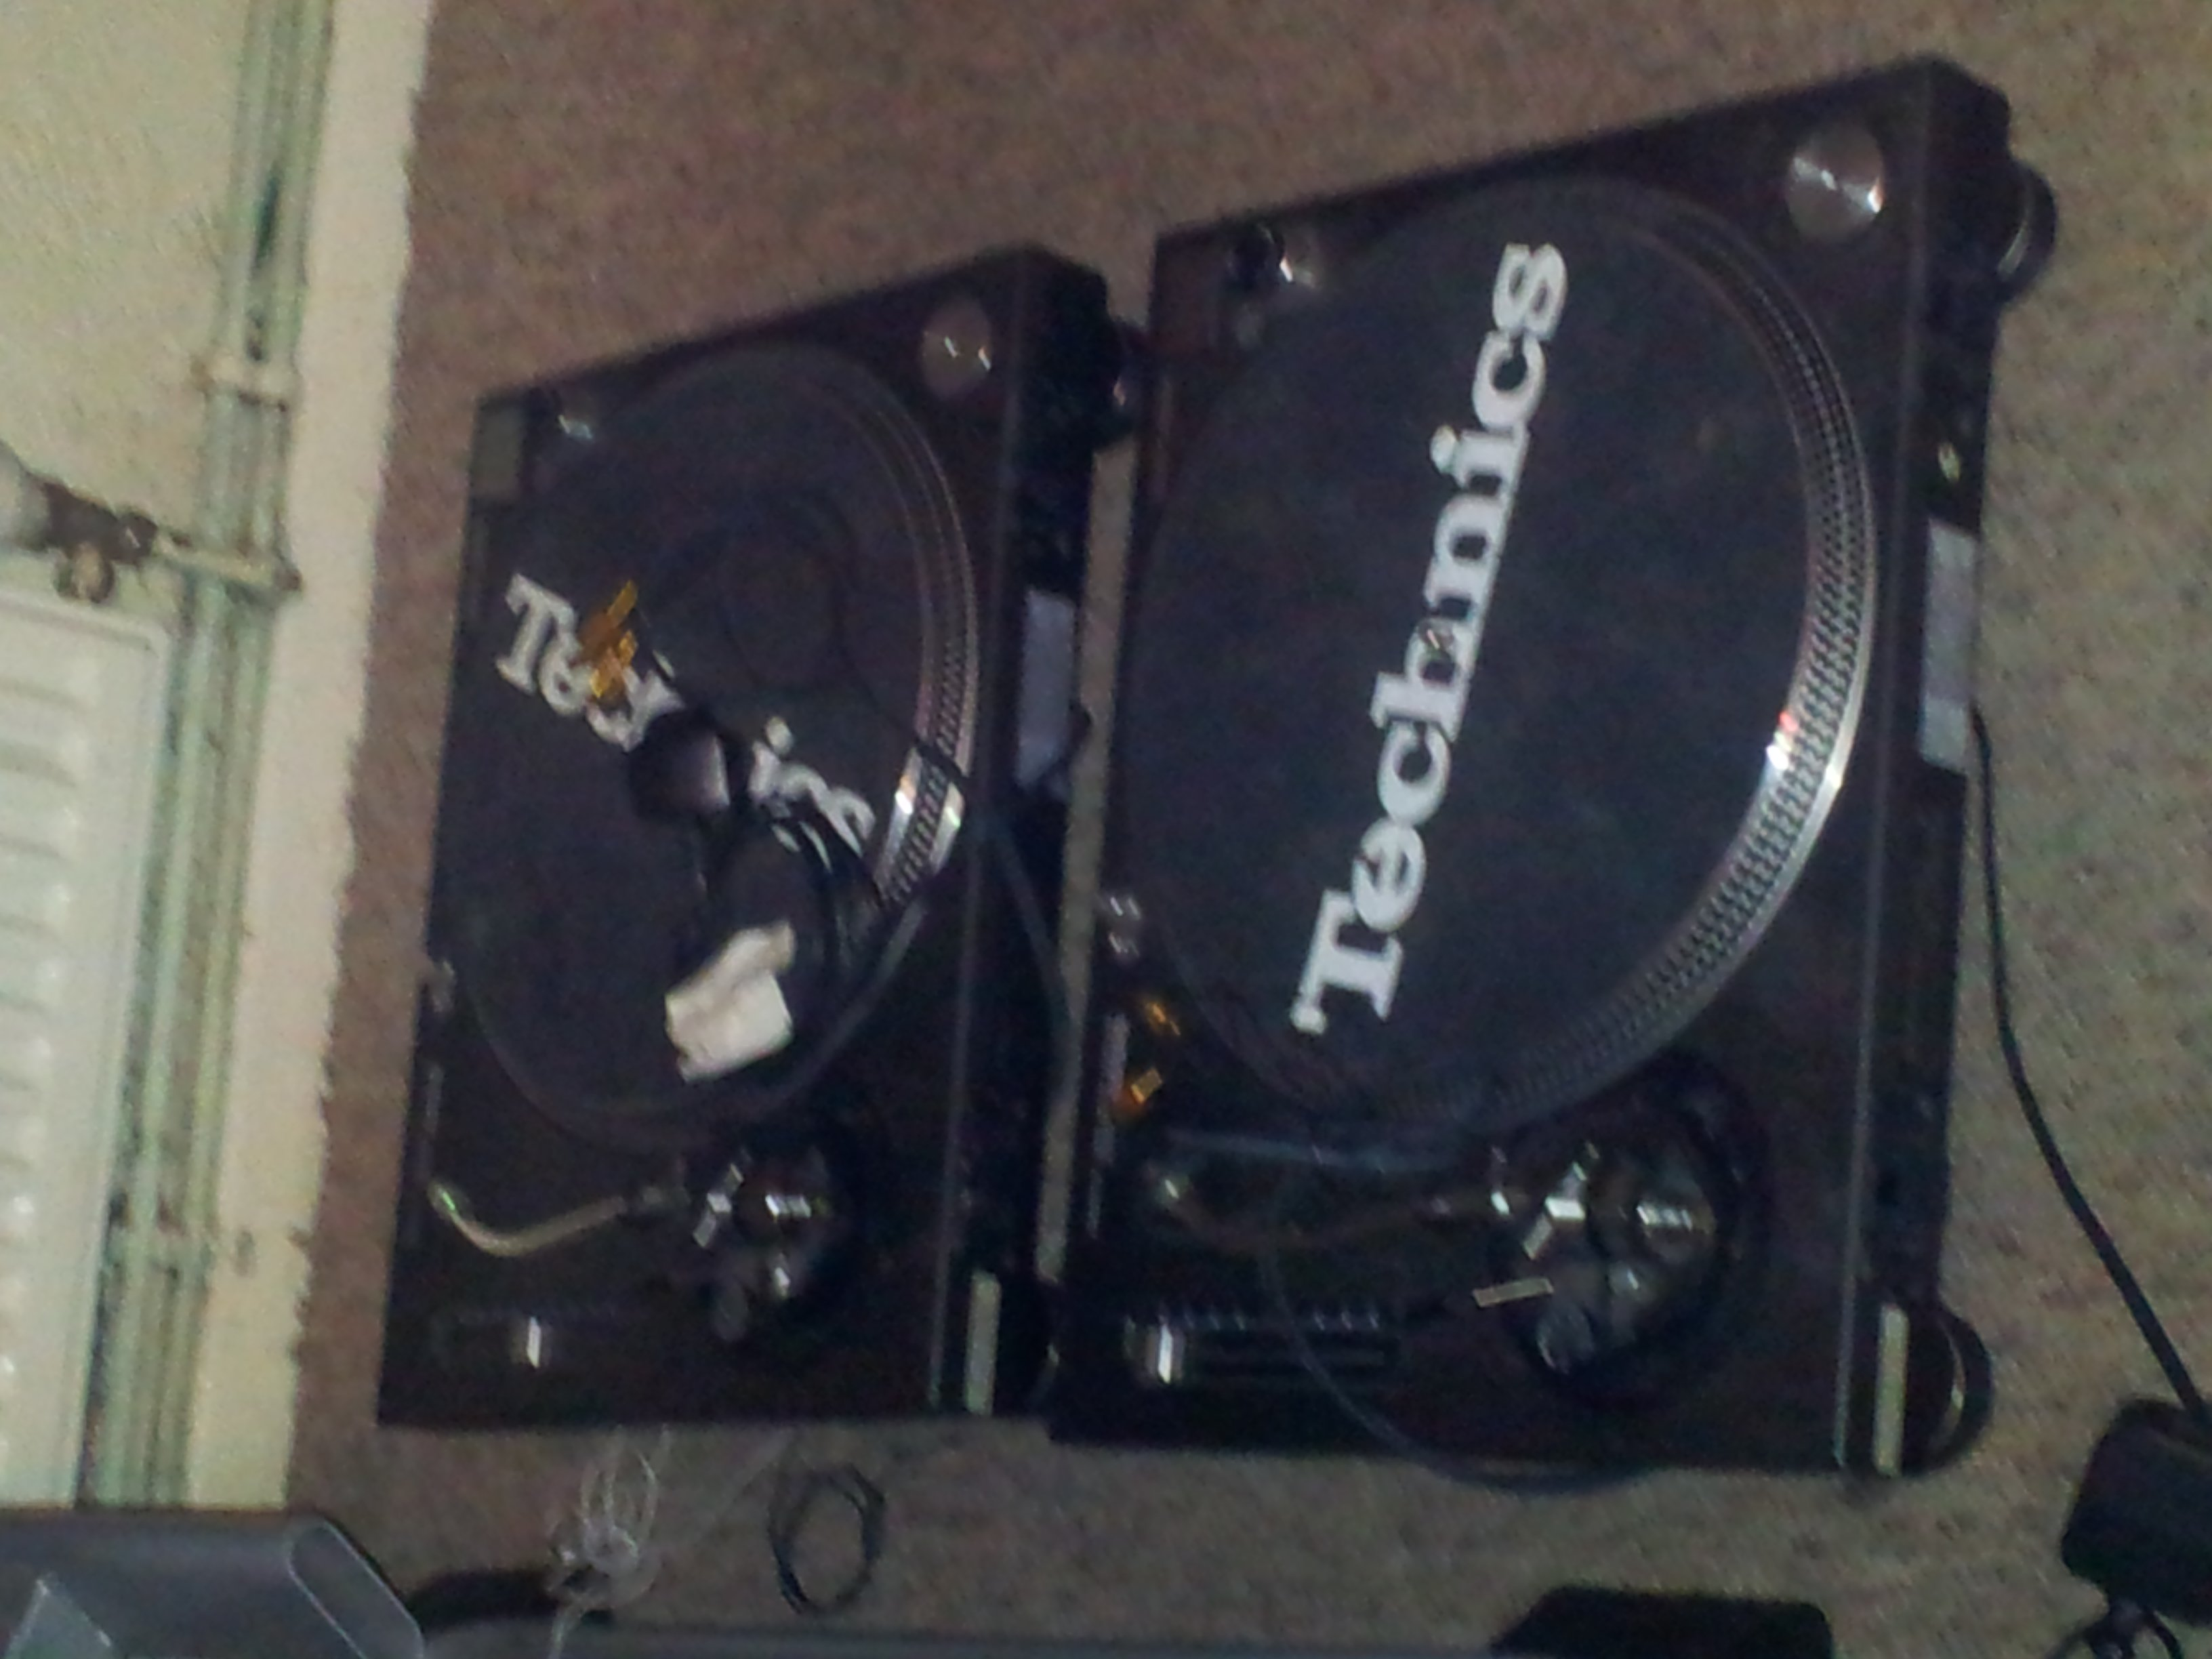 FOR SALE: *SLASHED PRICE* TECHNICS 1210 Mk2 recently serviced & upgraded